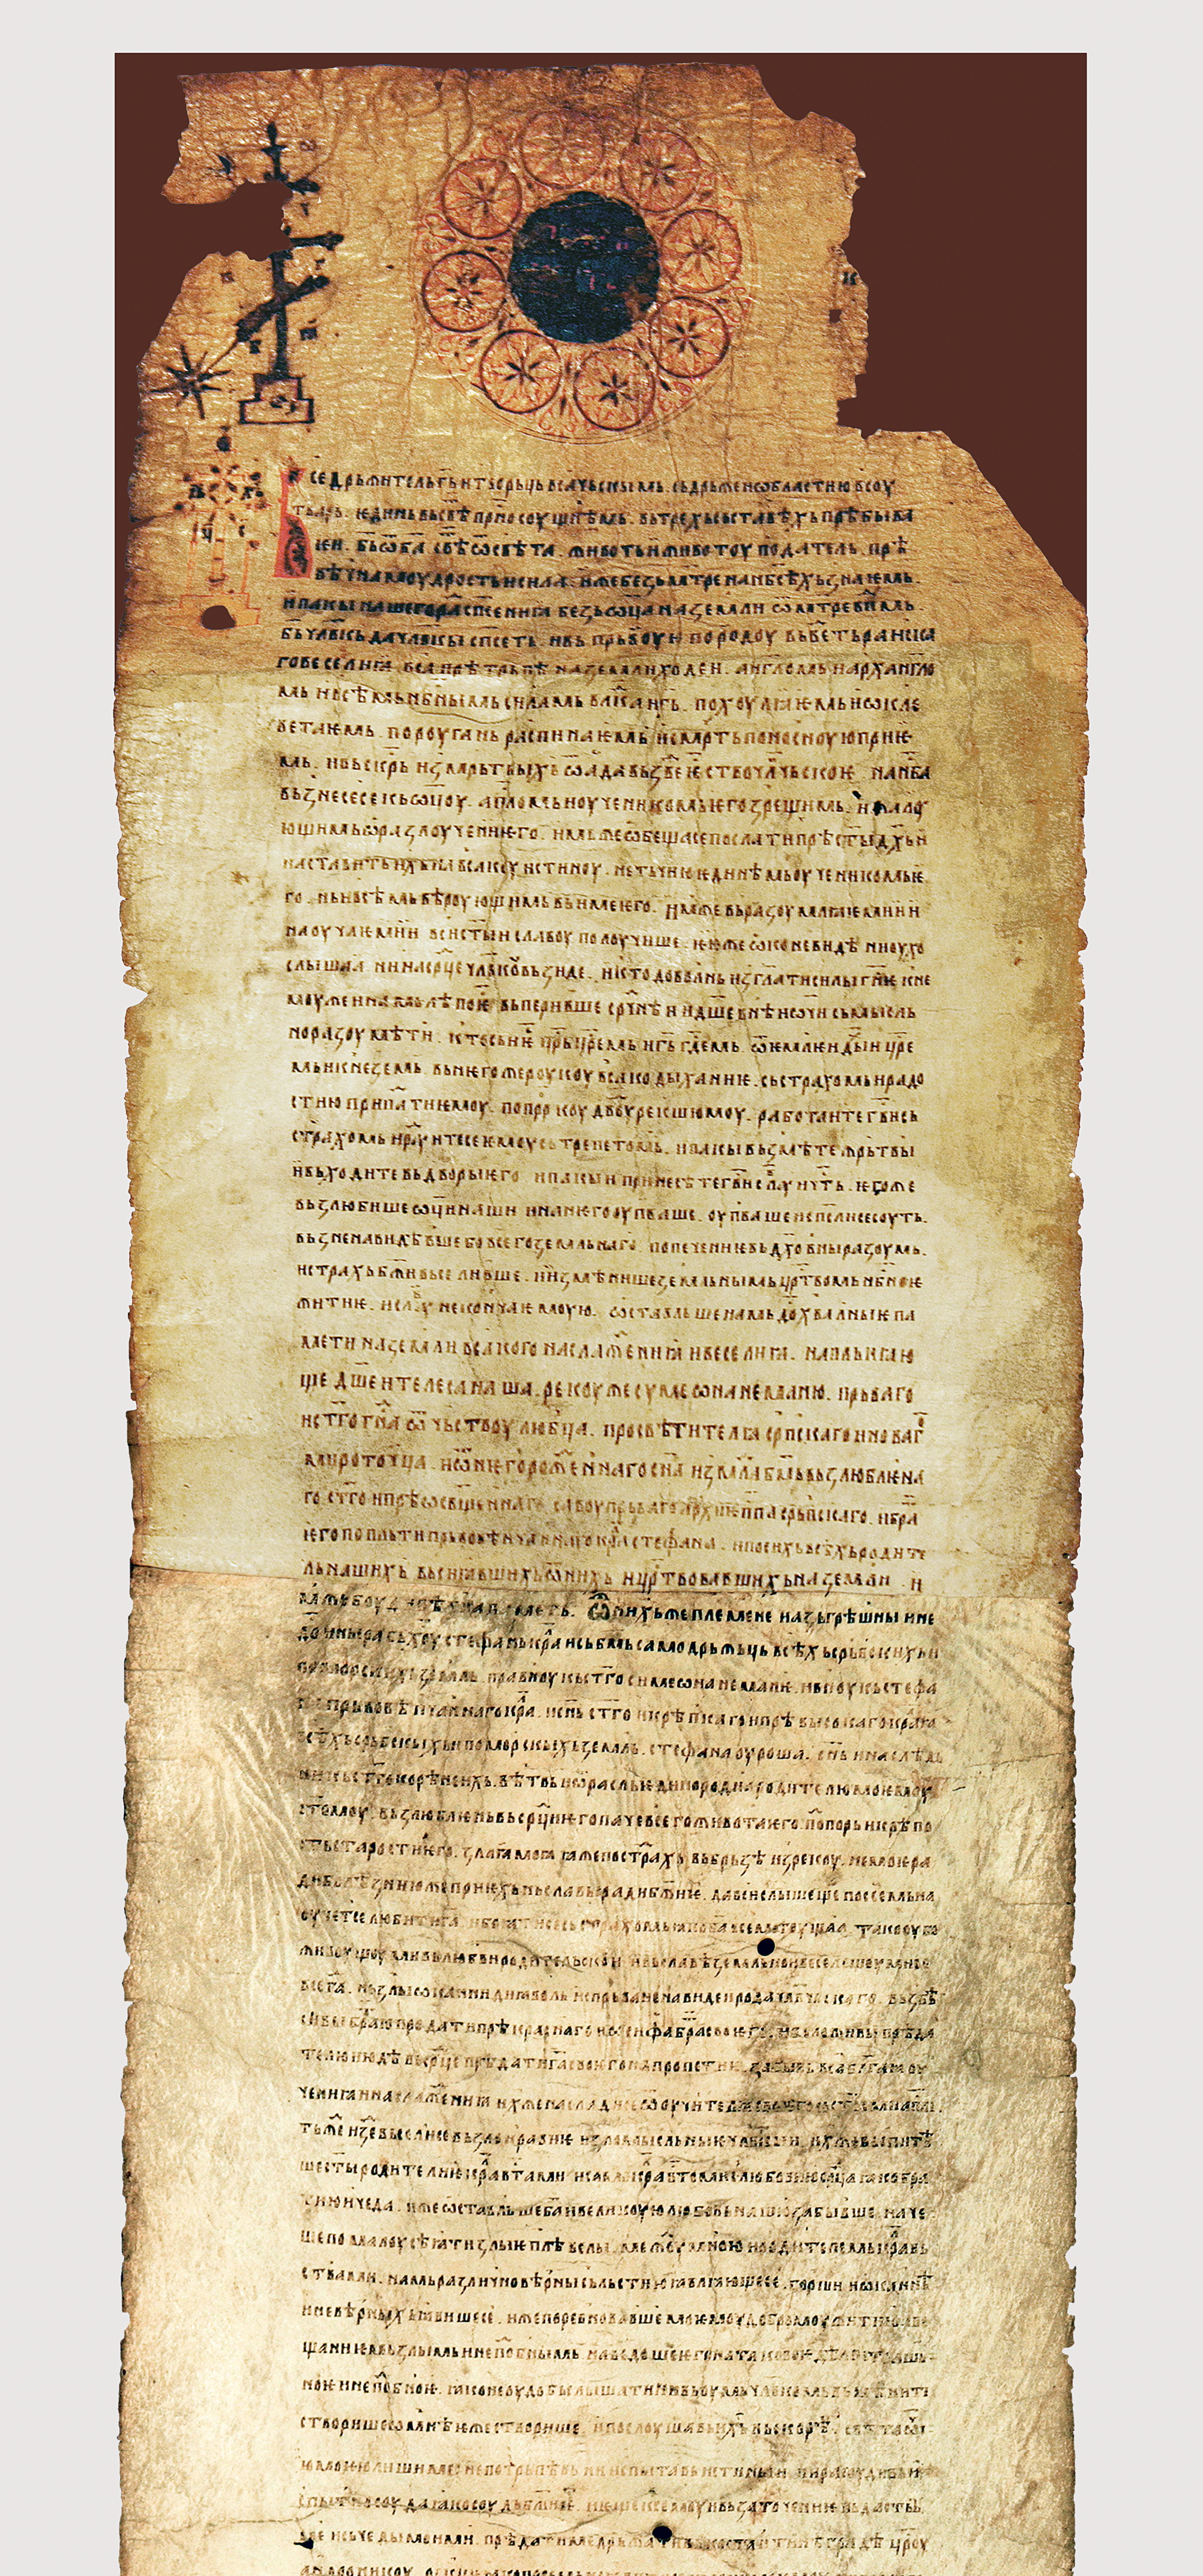 The Dečani Founding Charter